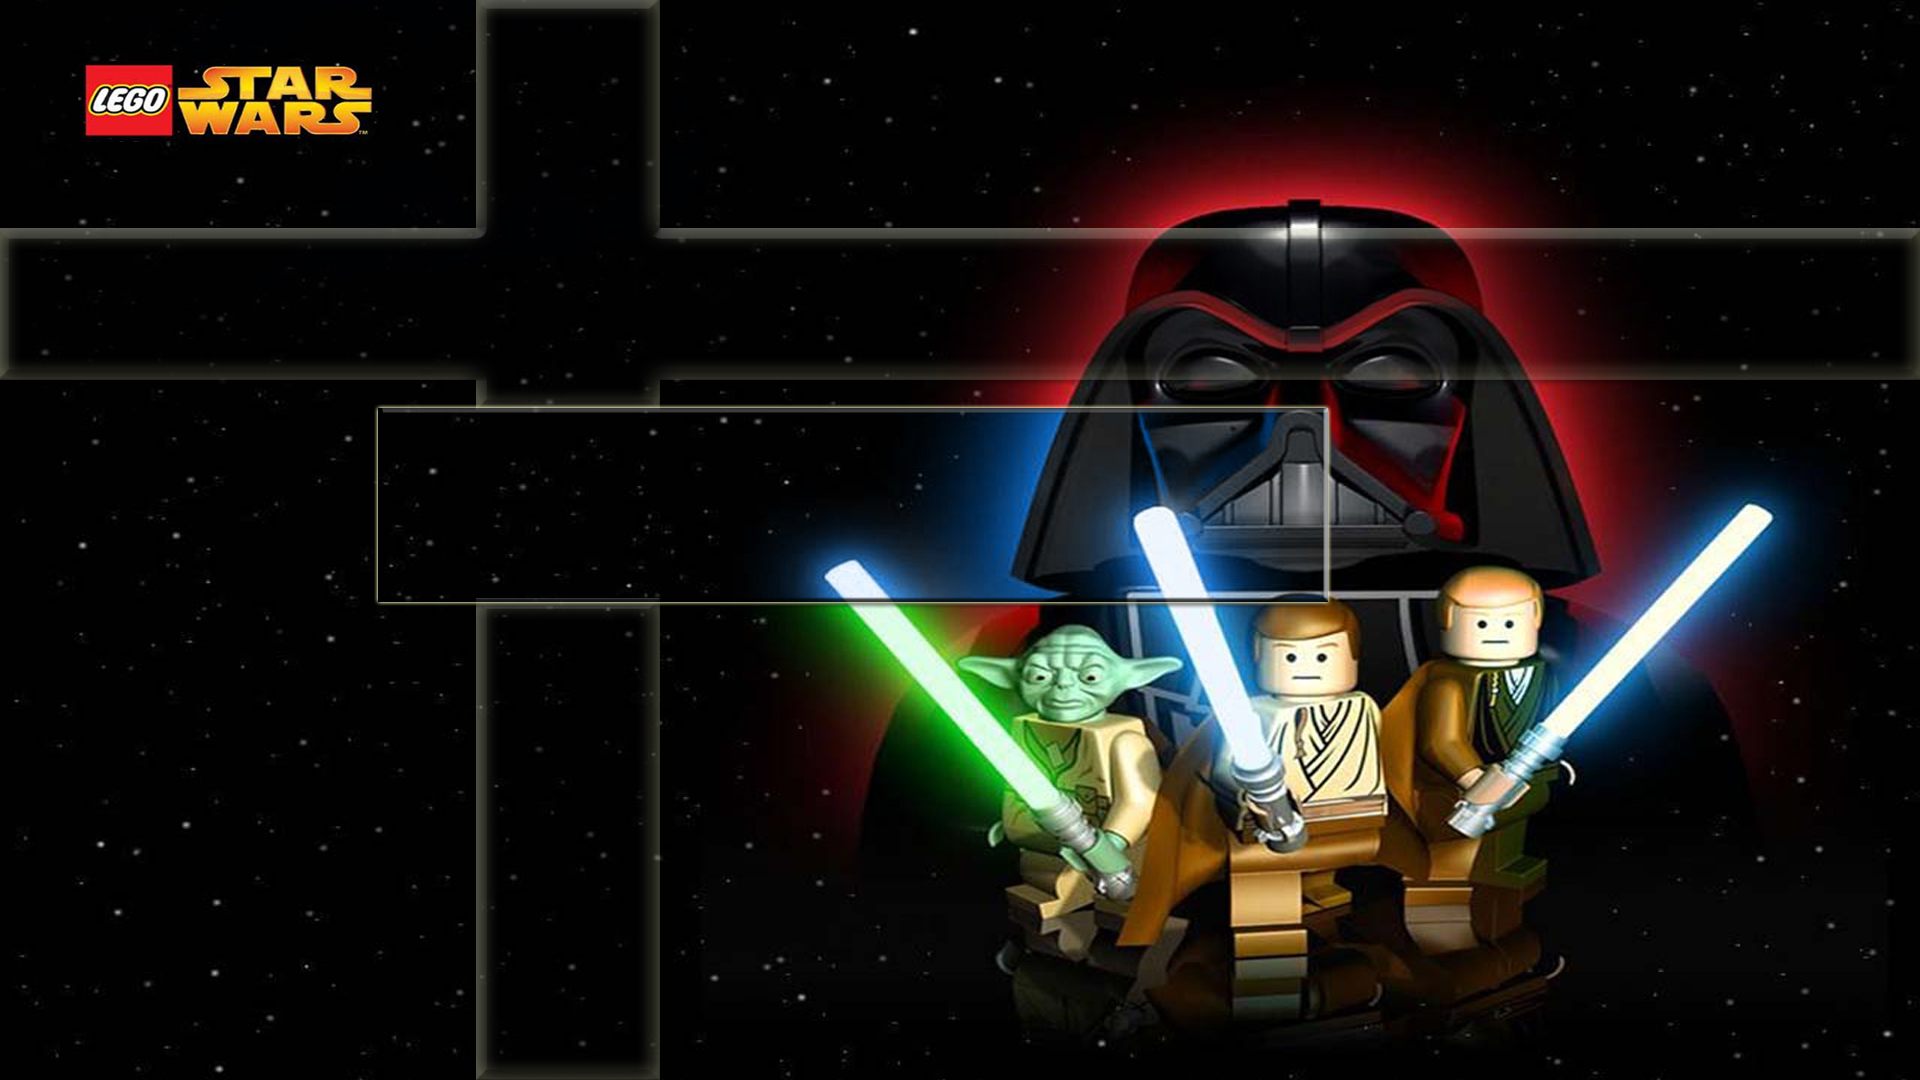 50 lego star wars wallpapers on